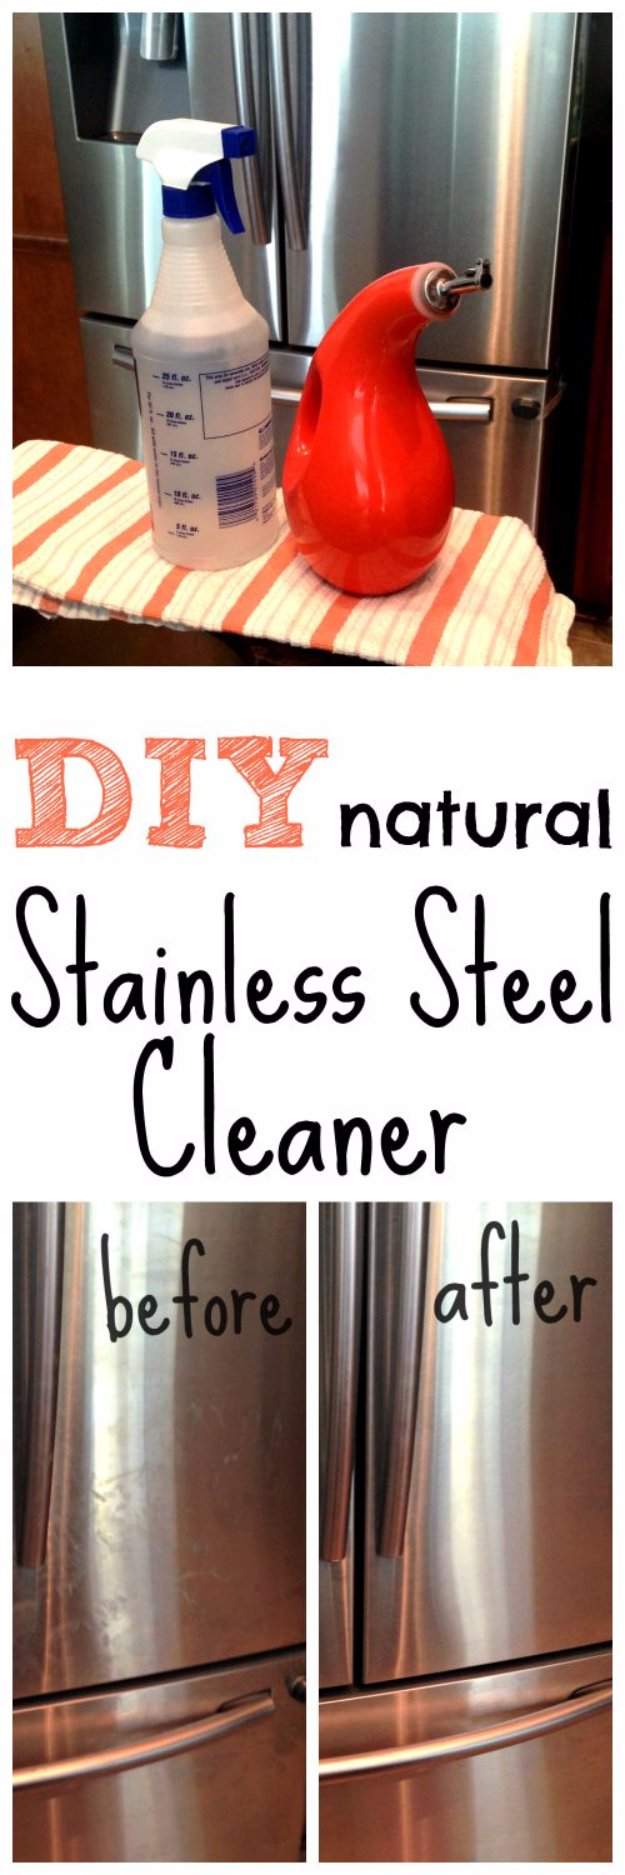 Best Natural Homemade DIY Cleaners and Recipes - DIY Natural Stainless Steel Cleaner Recipe - All Purposed Home Care and Cleaning with Vinegar, Essential Oils and Other Natural Ingredients For Cleaning Bathroom, Kitchen, Floors, Laundry, Furniture and More